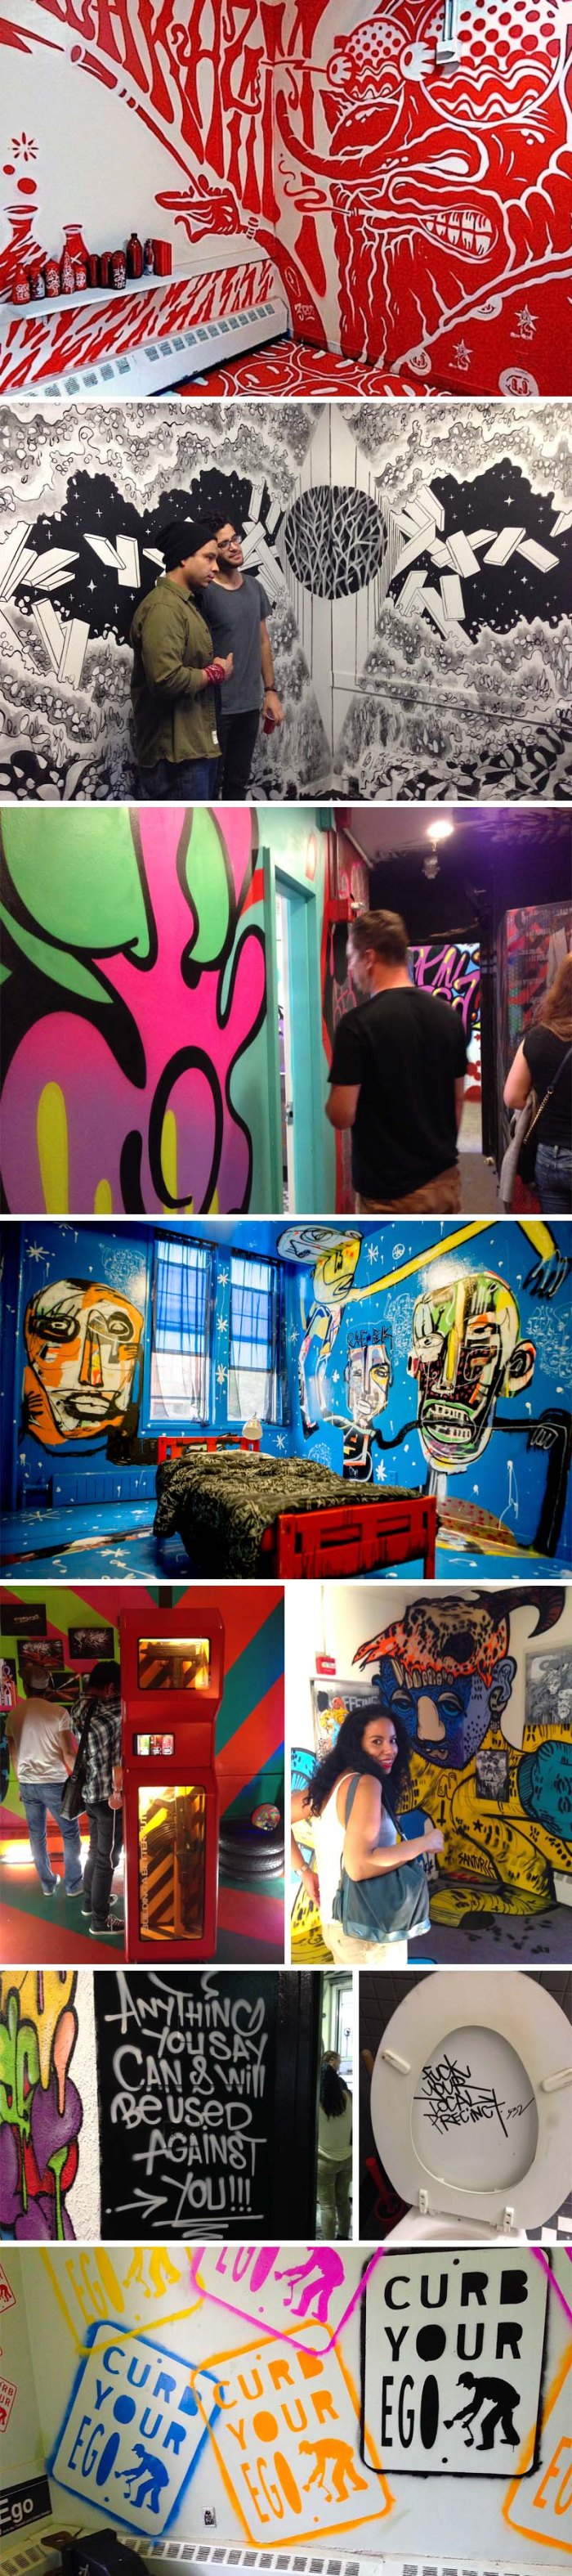 21st Precinct NYC, Graffiti, Street art exhibit, Outlaw Arts, NYC art exhibit in an abandoned police station building